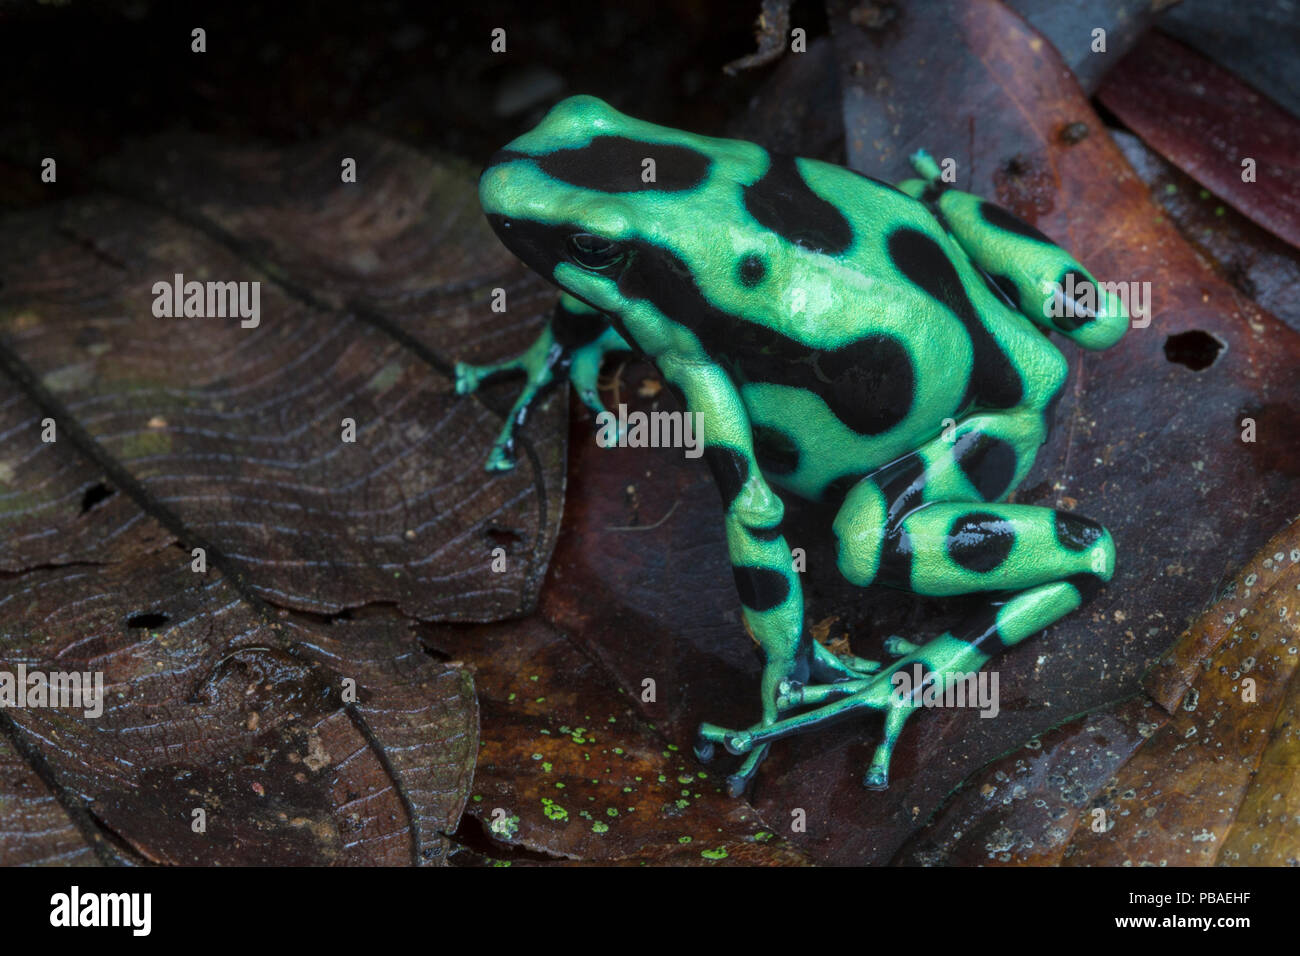 Green and black poison frog (Dendrobates auratus) Central Caribbean foothills, Costa Rica Stock Photo